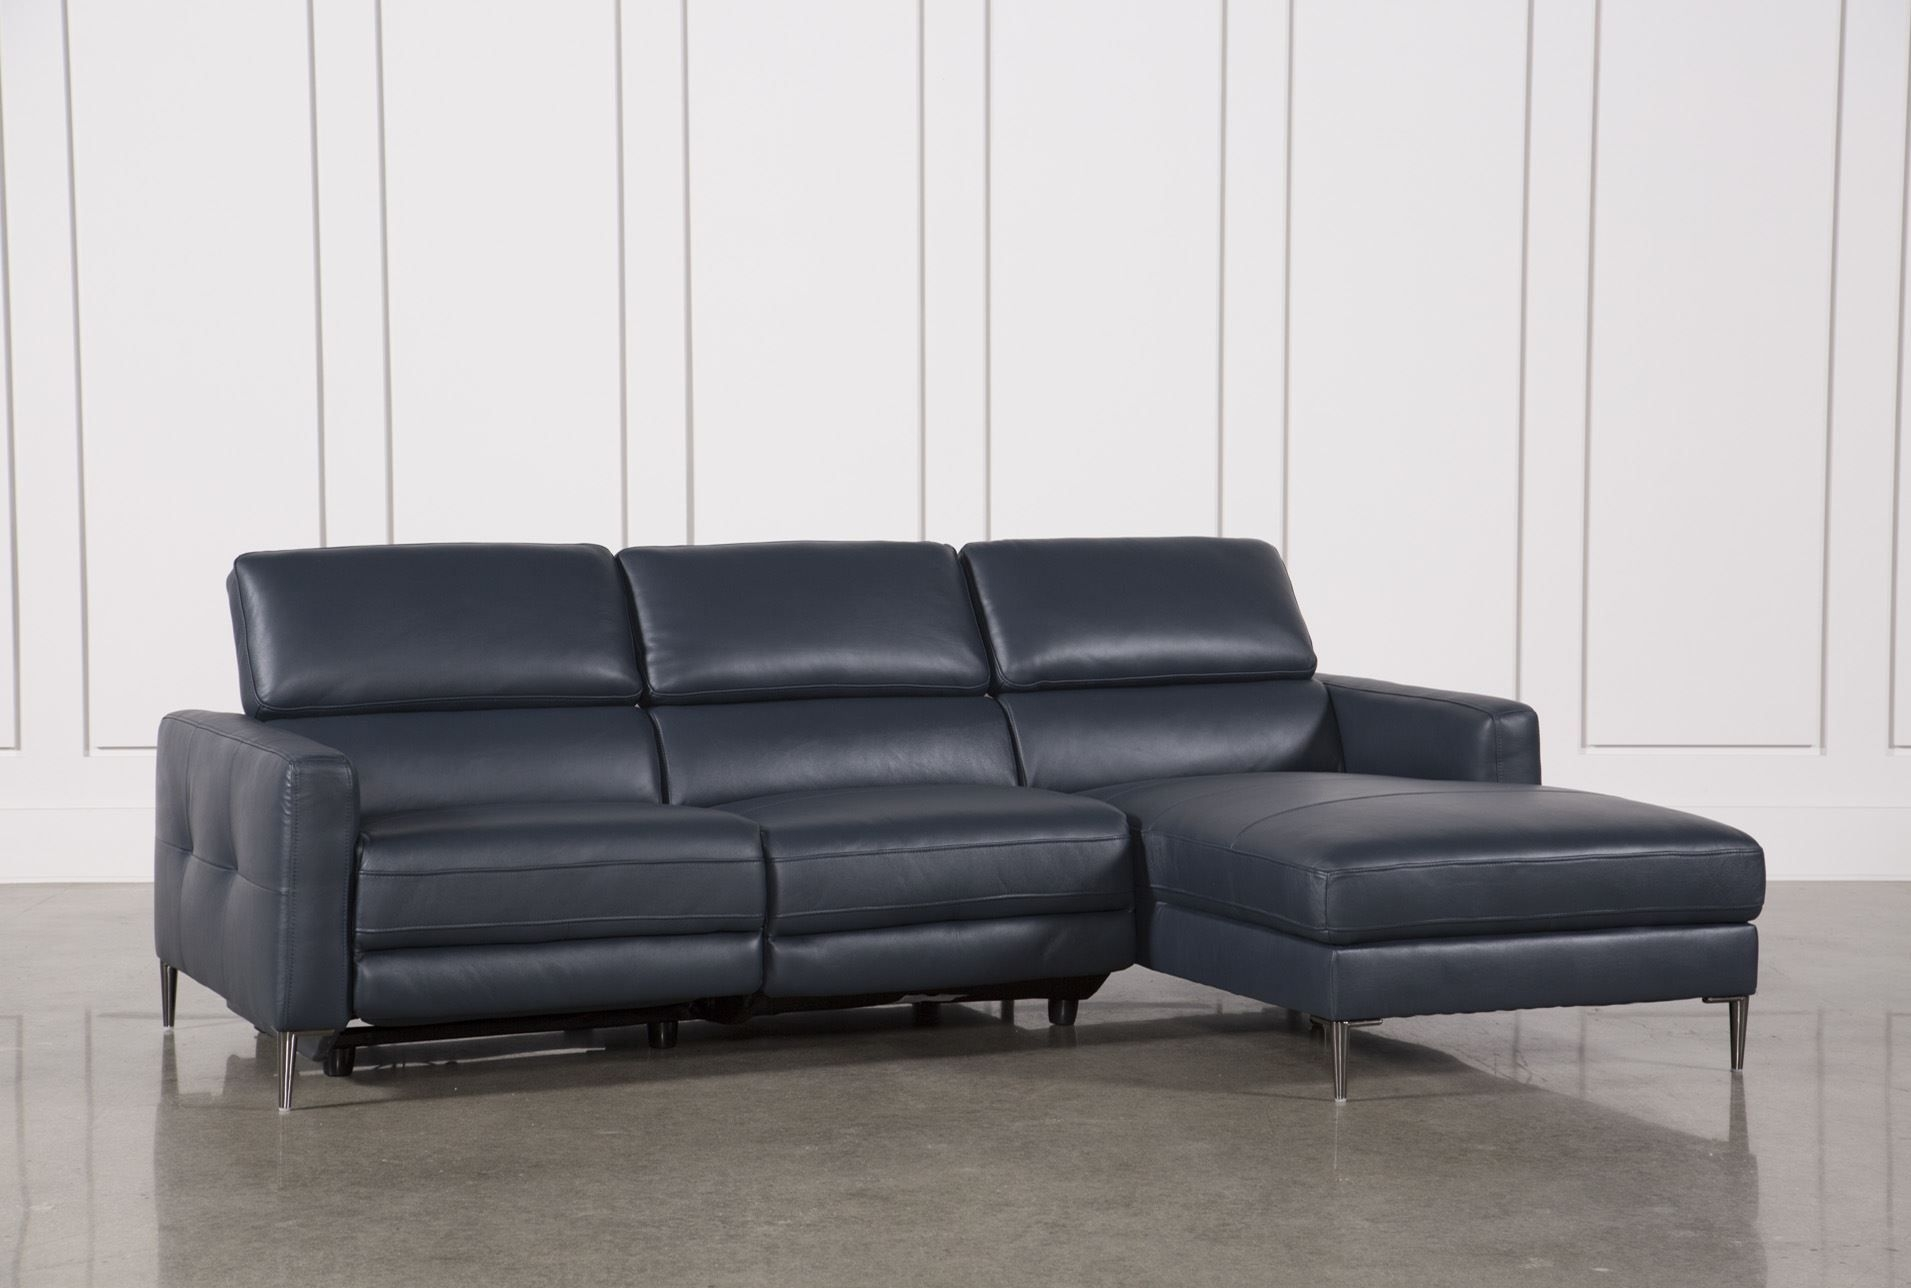 Tara Blue 2 Piece Right Facing Chaise Sofa | Chaise Sofa, Living Within Tatum Dark Grey 2 Piece Sectionals With Raf Chaise (View 9 of 25)